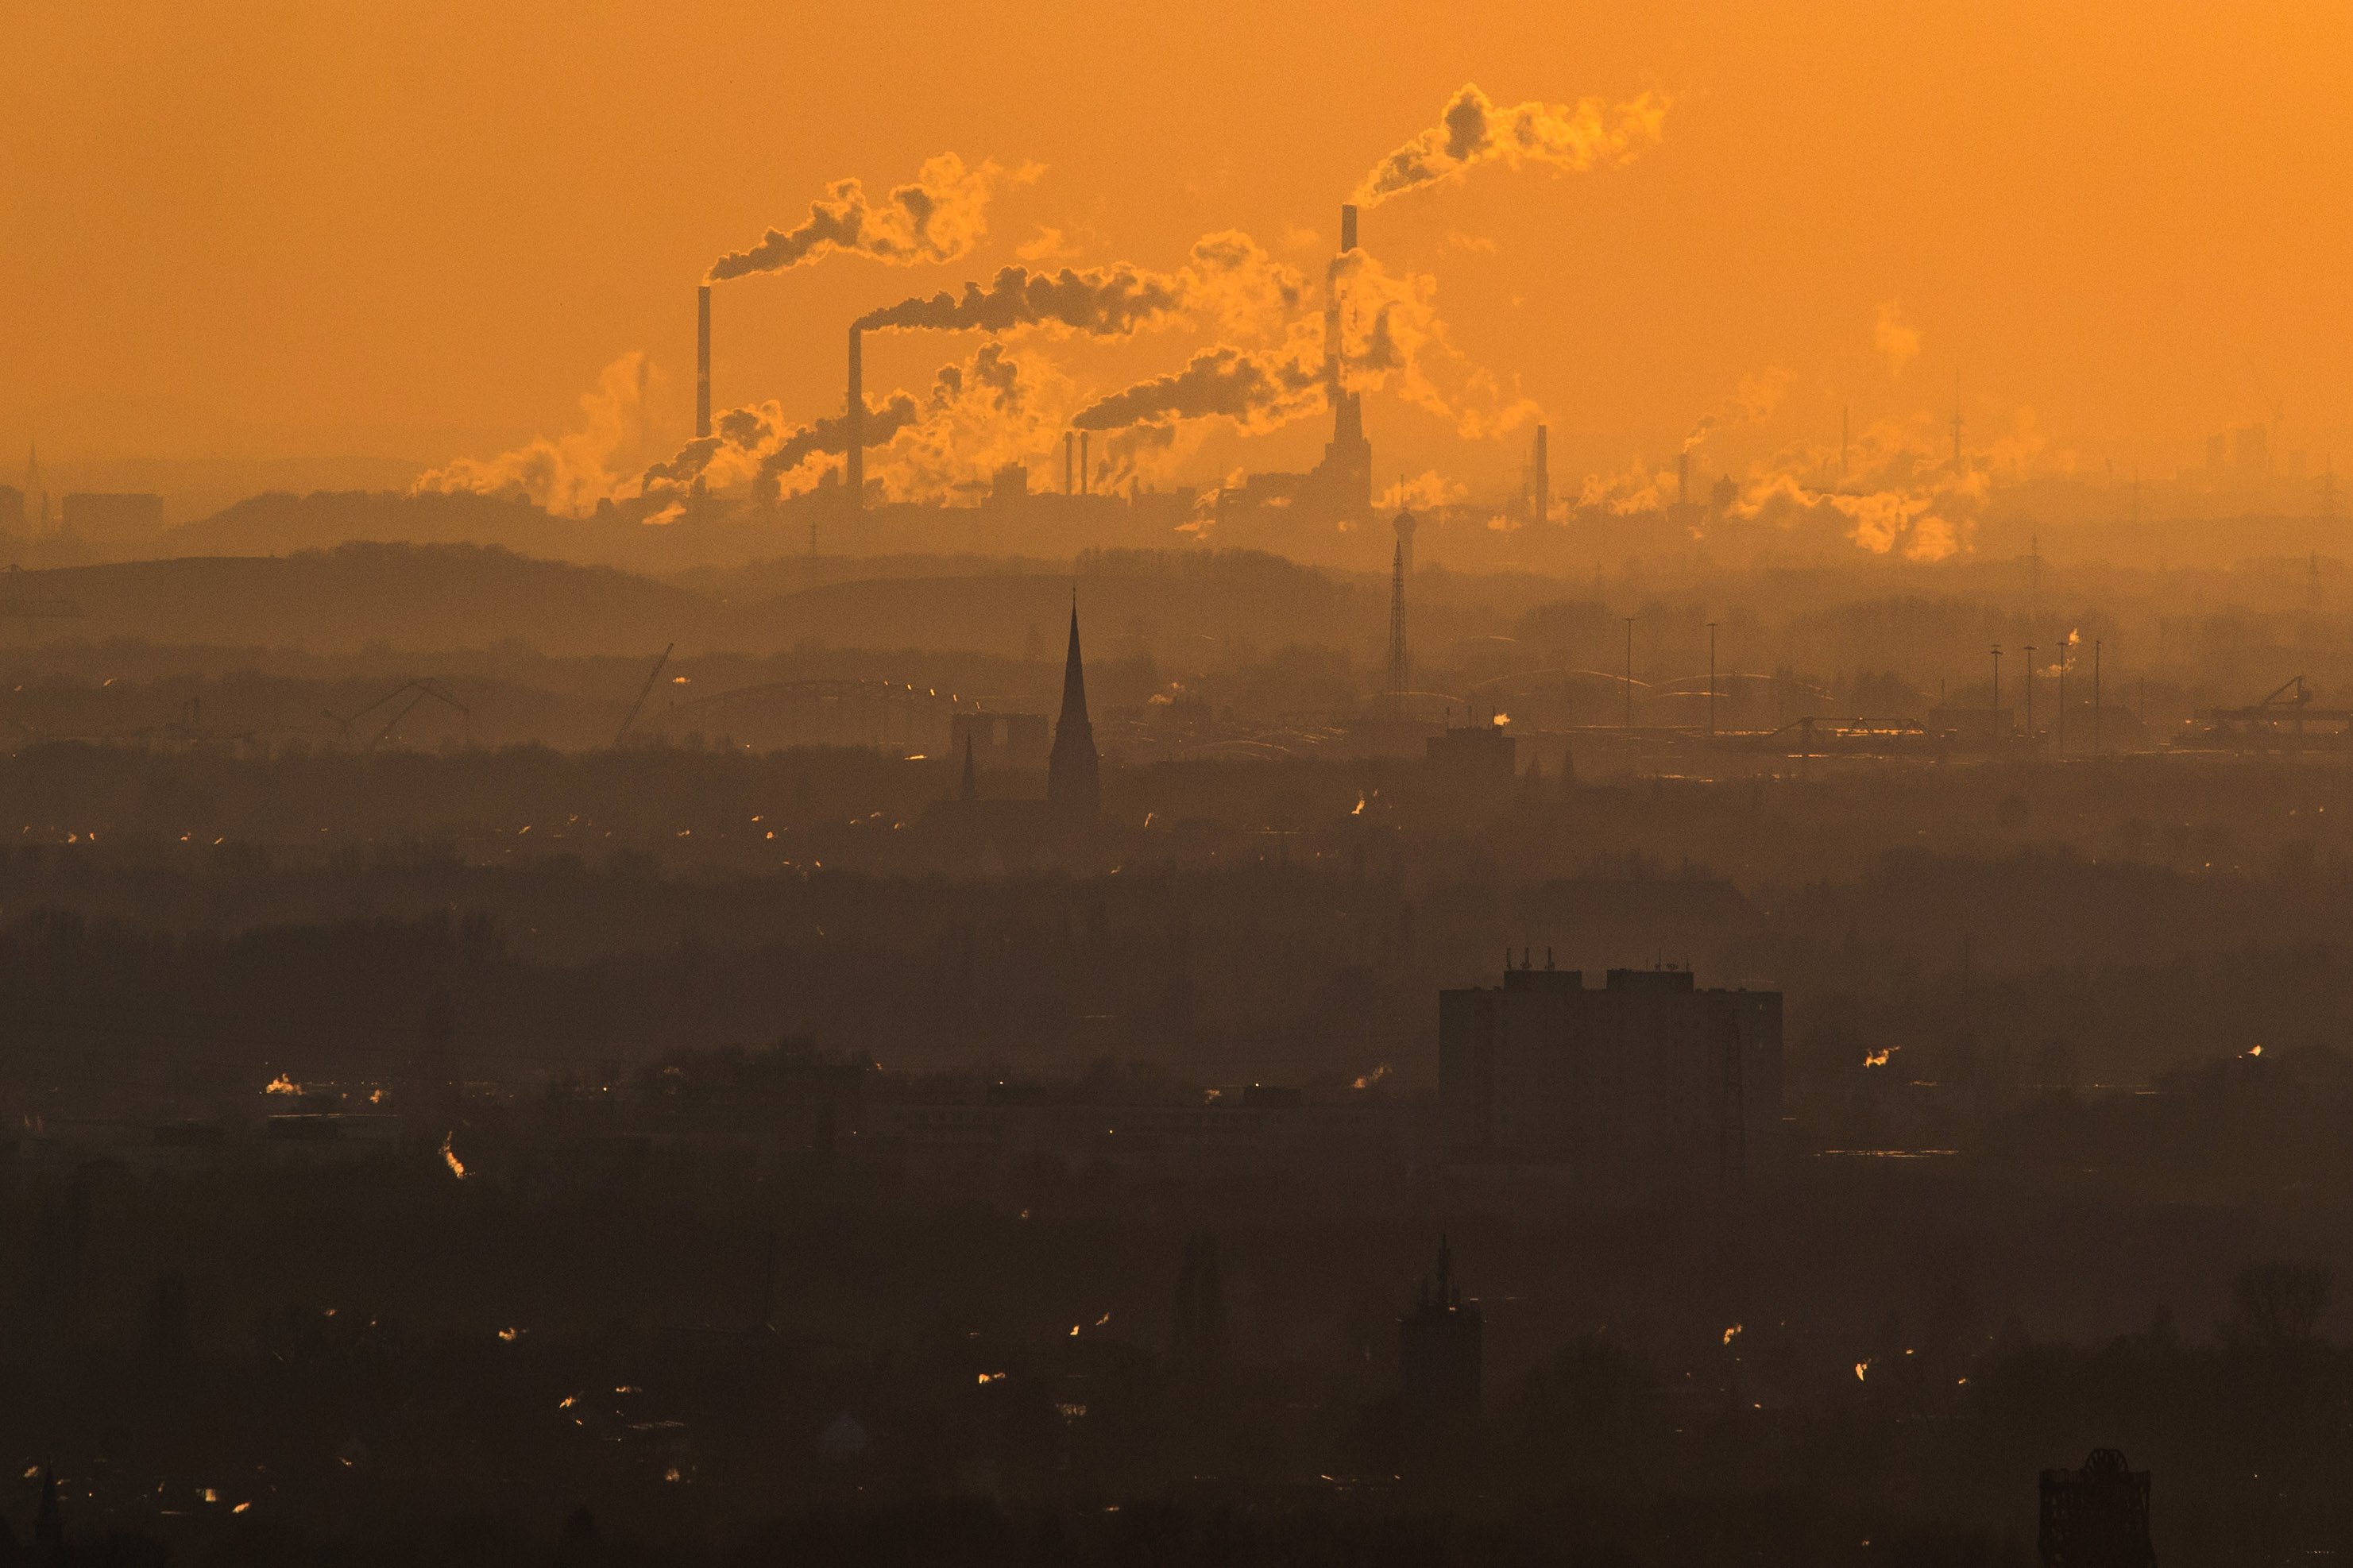 6 January 2019: Steam and exhaust fumes rise from different polluters on a cold winter day in Oberhausen, Germany. Greenhouse gases are among the chief causes of global warming and climate change. (Photograph by Lukas Schulze/Getty Images)